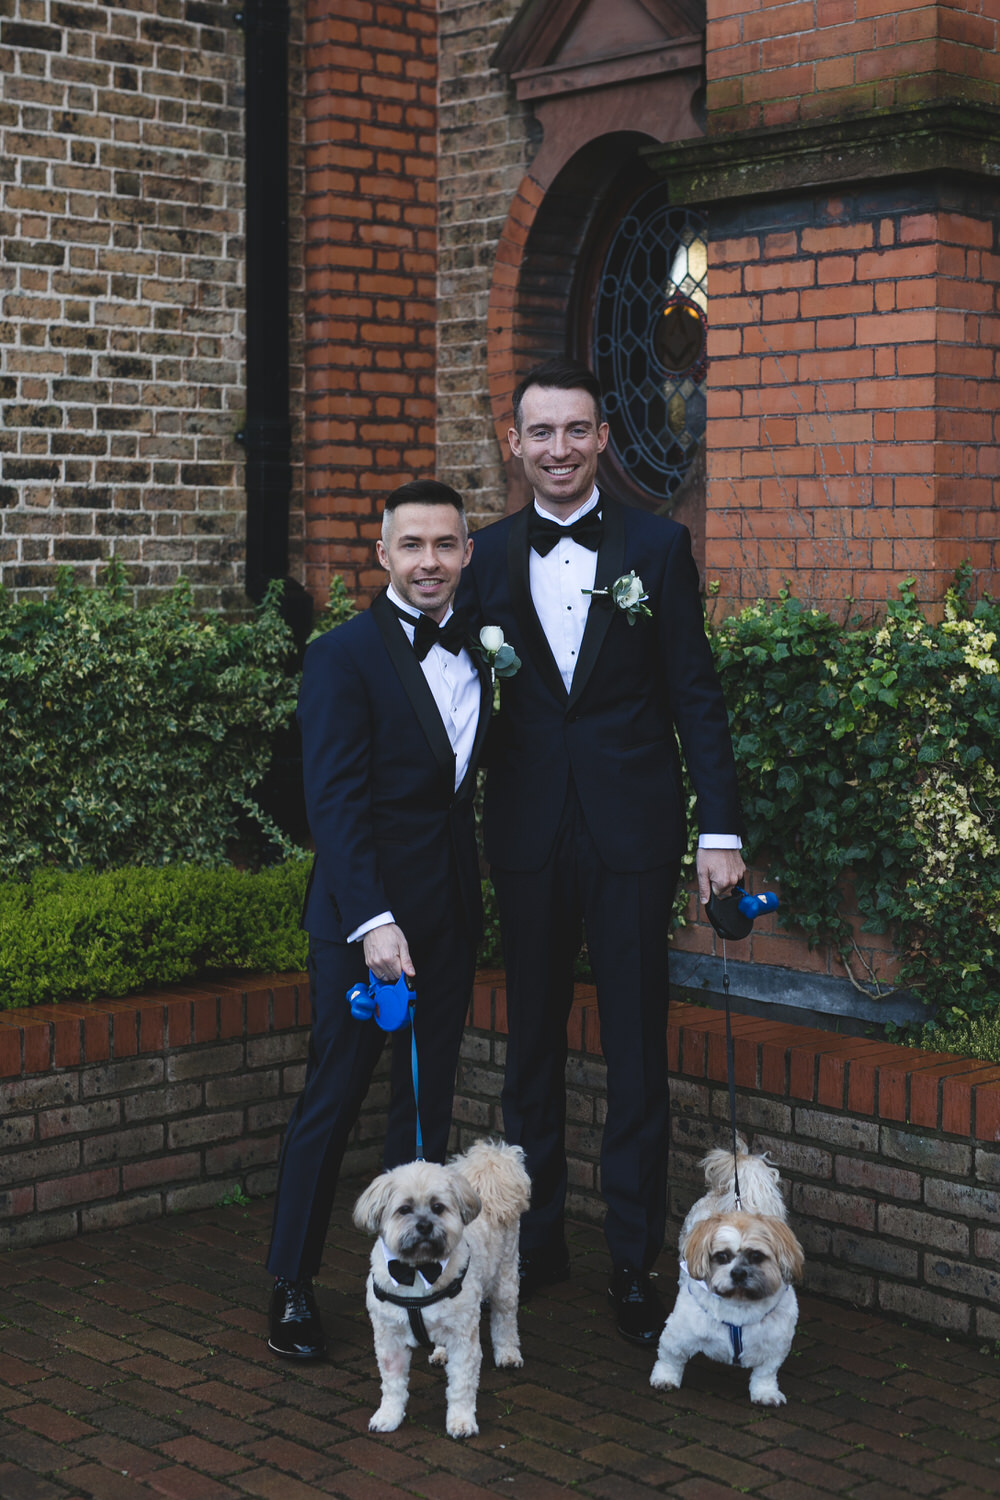 Wedding portraits with two grooms & their adorable dogs at Thomas Prior Hall Ballsbridge